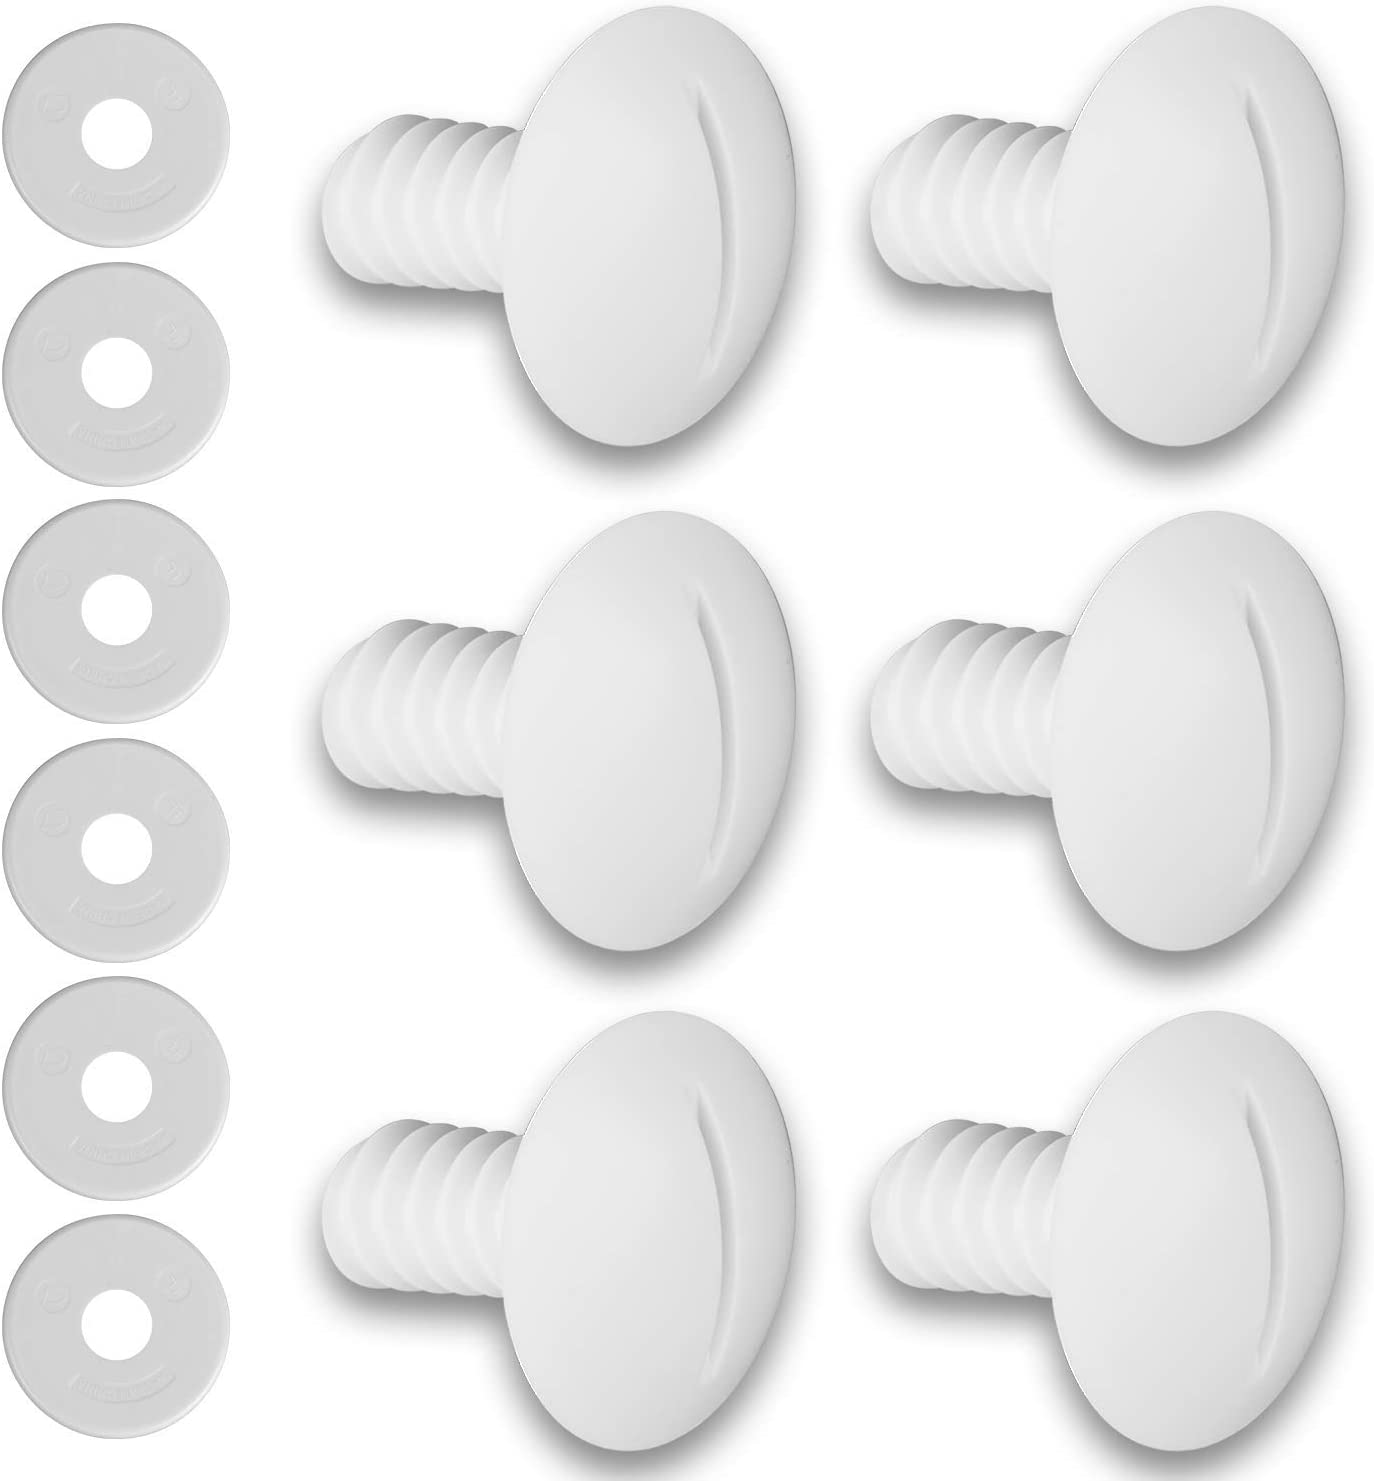 HENMI Plastic Wheel Screws (Pack of 6 Screws) for Polaris Pool Cleaner 180/280 with Extra 6 PCS Washers Pool Cleaner Replacement Parts C55 C-55, White